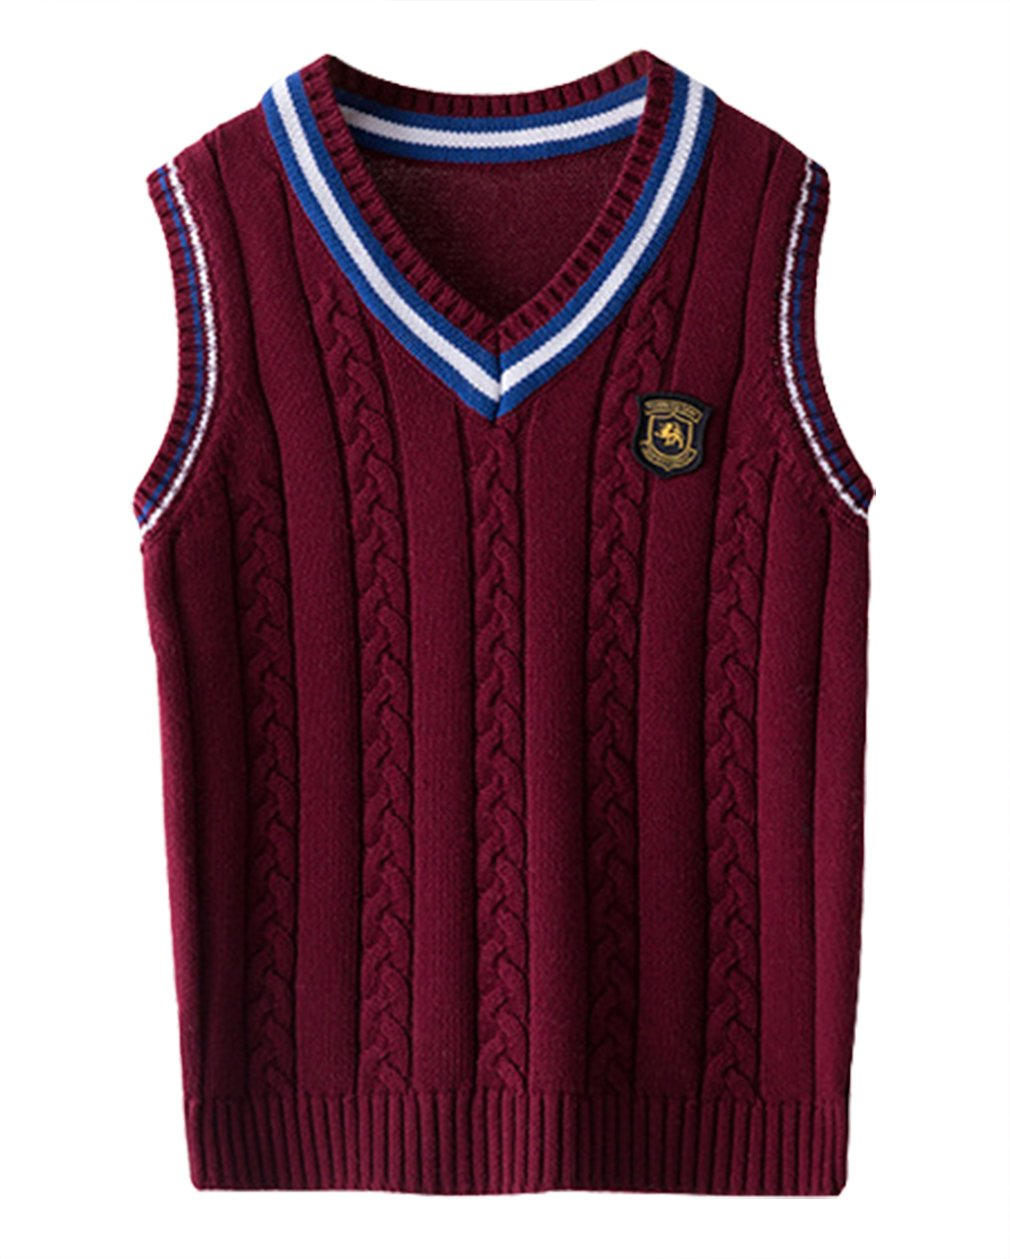 La Vogue Boys Knit Sweater Vest Cotton Knitwear V-Neck Tank Top Sweater